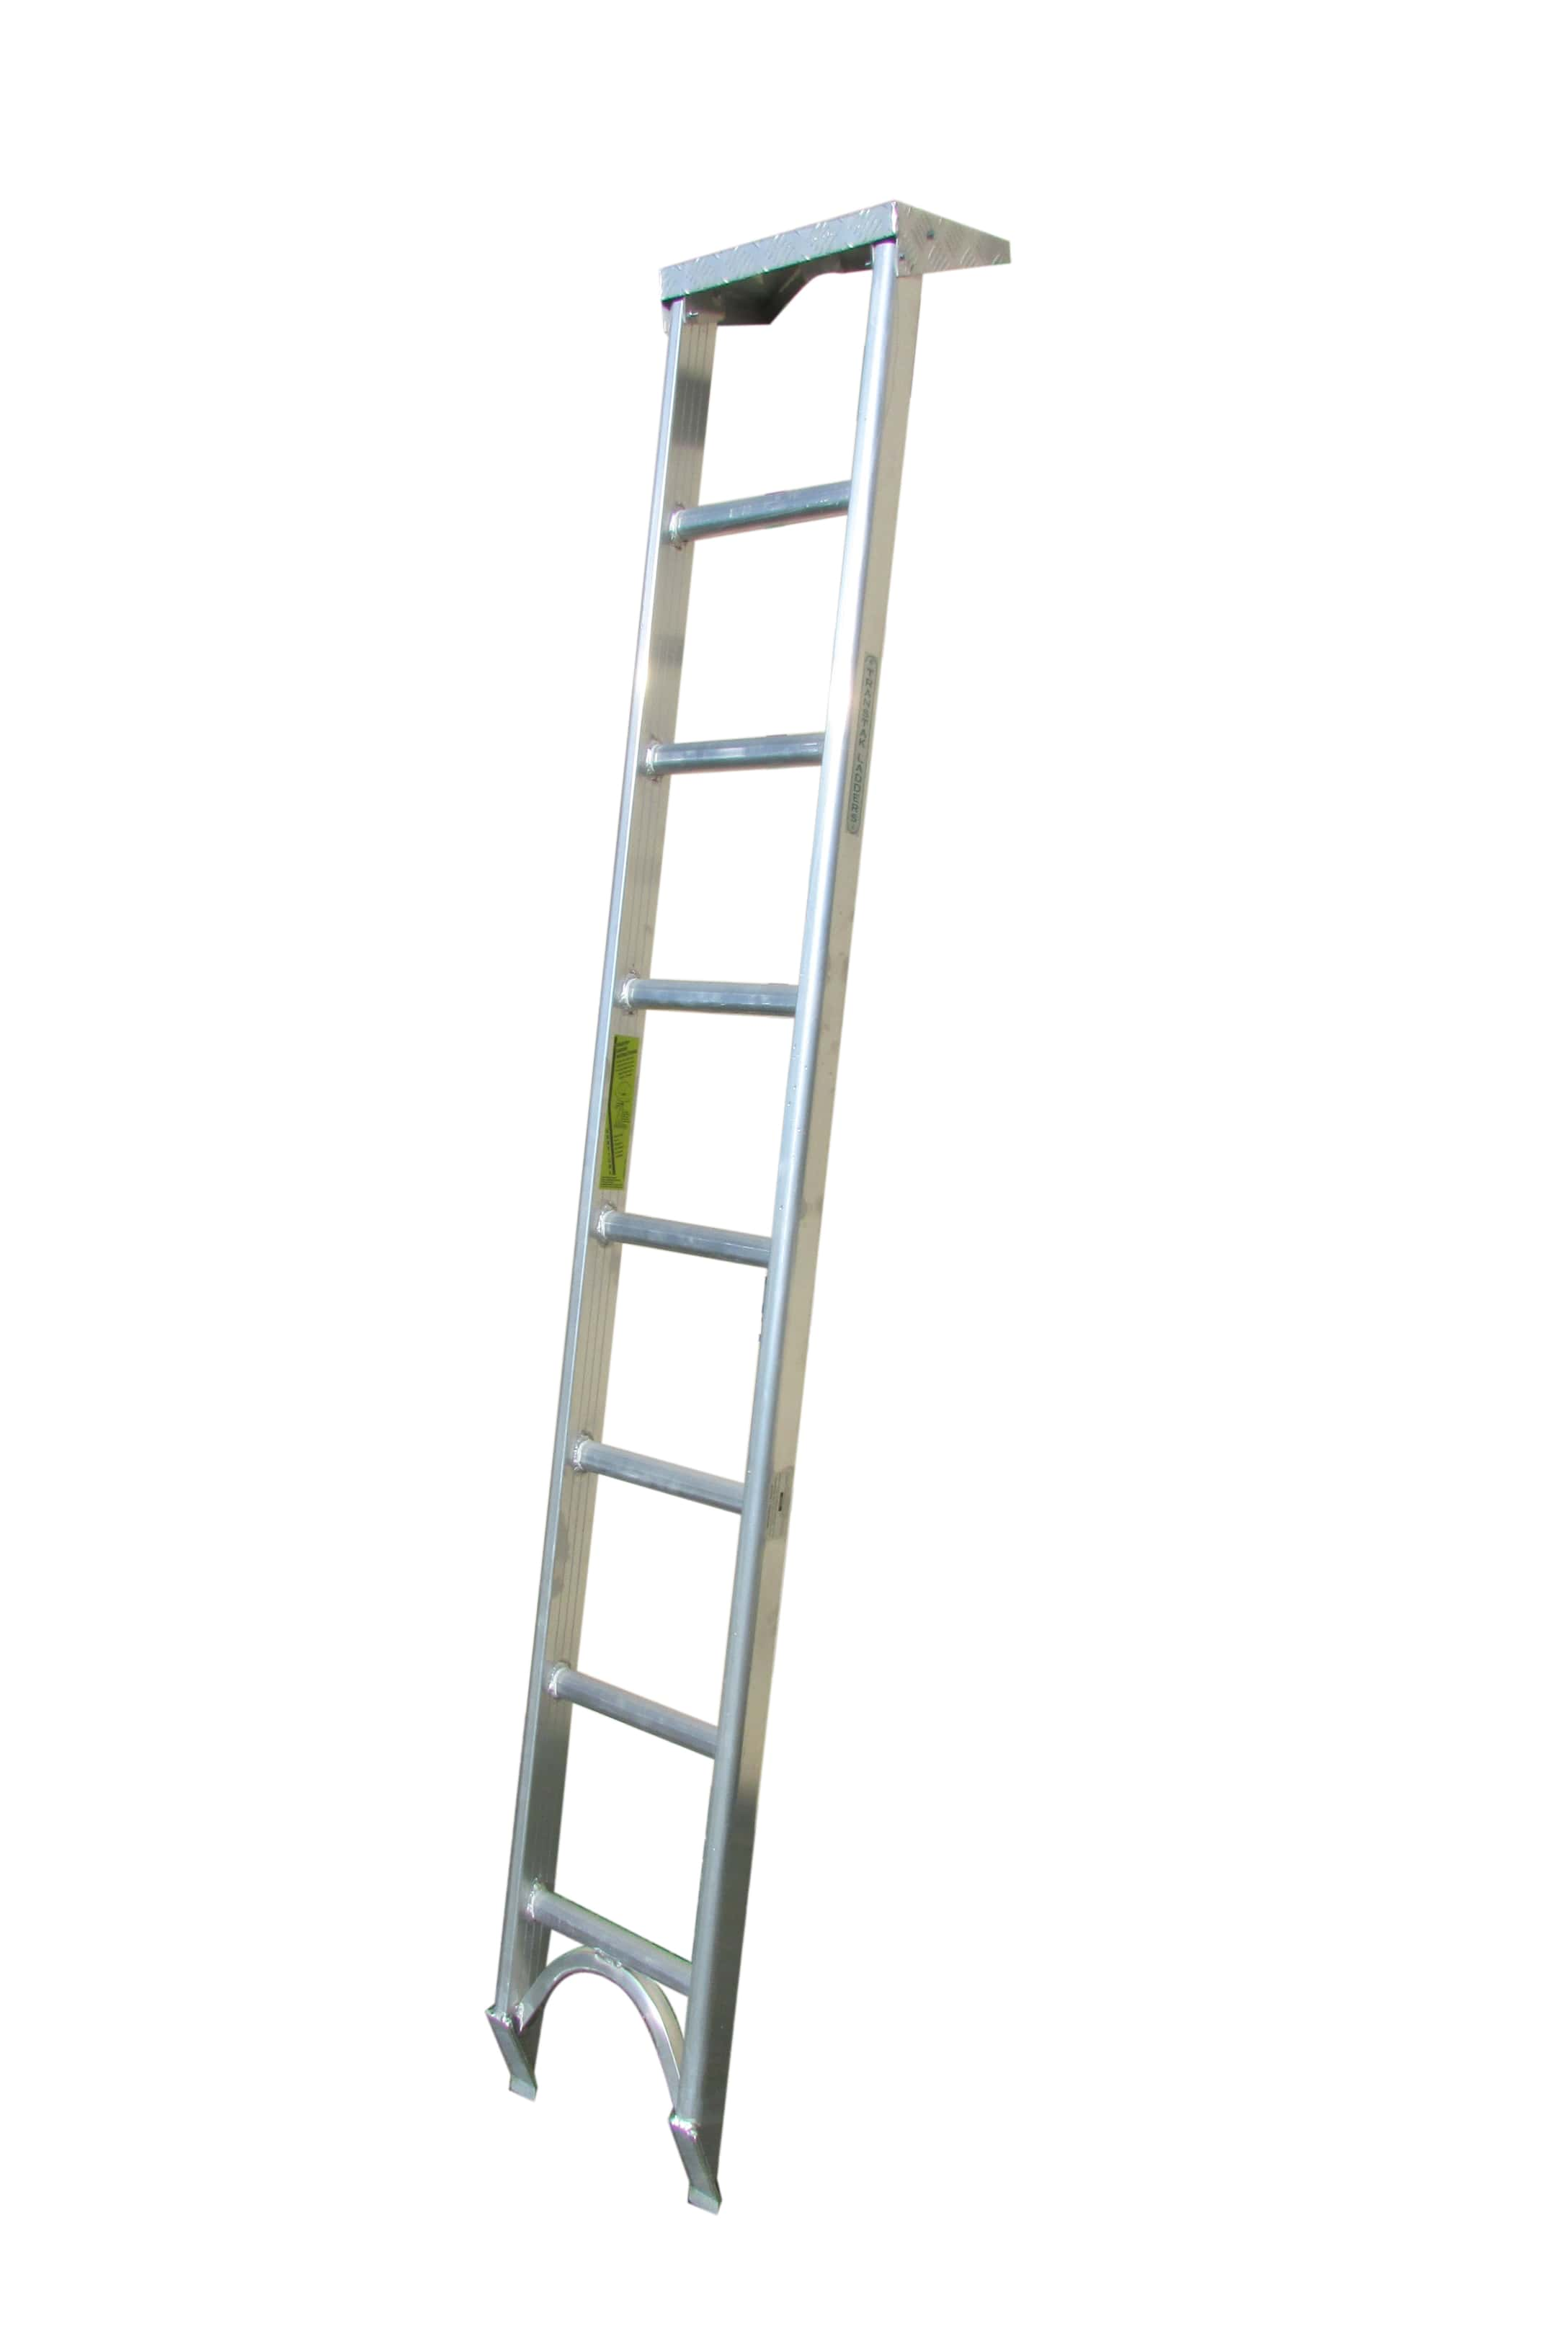 forestry_ladders_2264